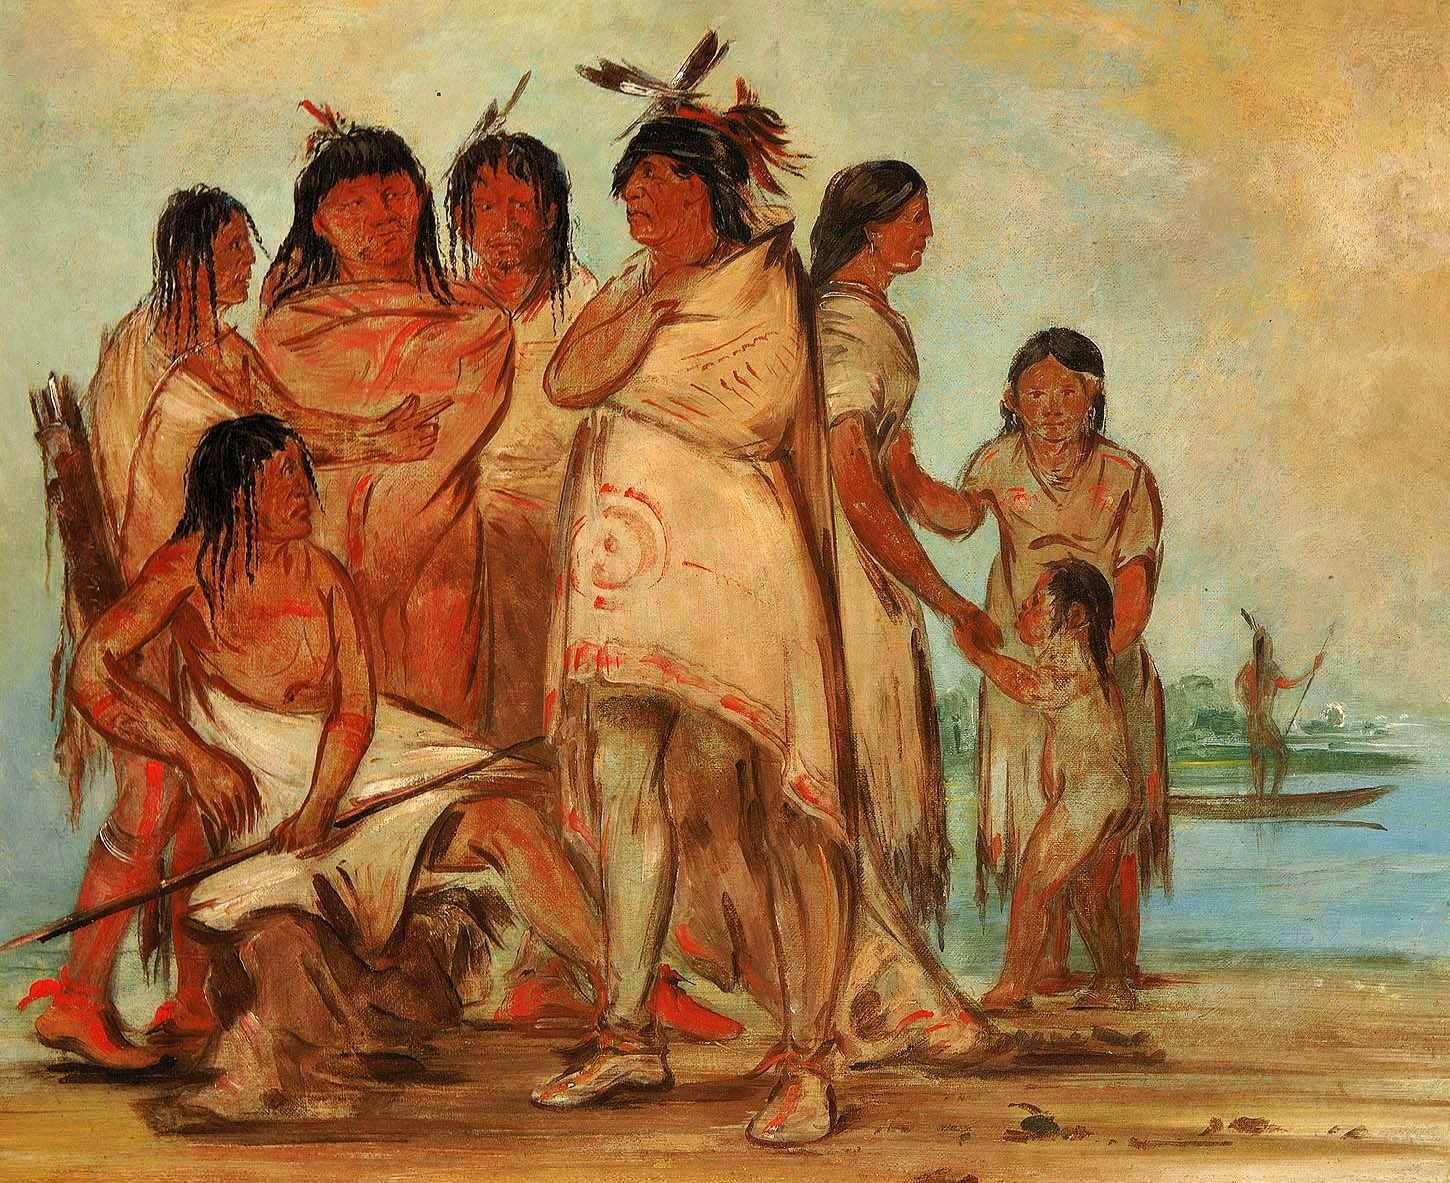 http://2.bp.blogspot.com/-GdjseRYWPnc/UKj2uiU5aaI/AAAAAAABOZE/SEf1vqouM-4/s1600/George+Catlin+(American+artist,+1796-1872)+Du-c%C3%B3r-re-a,+Chief+of+the+Tribe,+and+His+Family.jpg